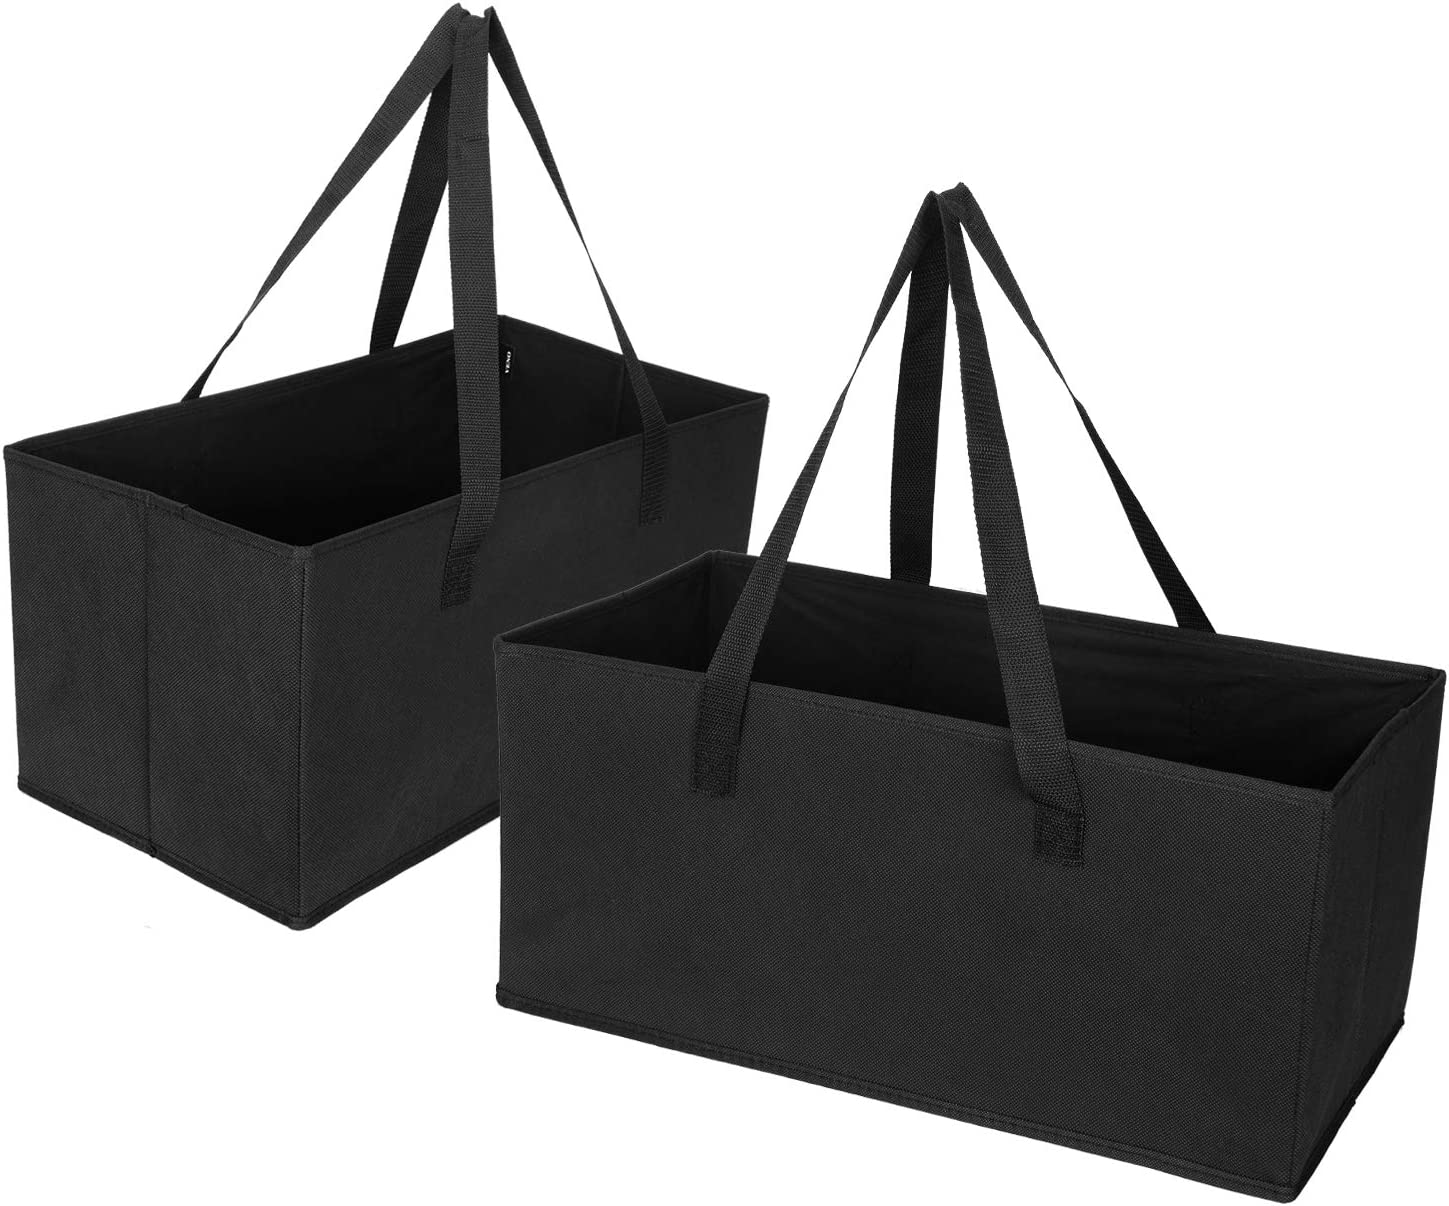 VENO 2 Packs Extra Large Reusable Grocery Shopping Bags, Storage Boxes, Handy, Premium Quality, Heavy Duty Tote with Handles, Reinforced Bottom. Foldable, Collapsible, Made from Recycled Material (XL)